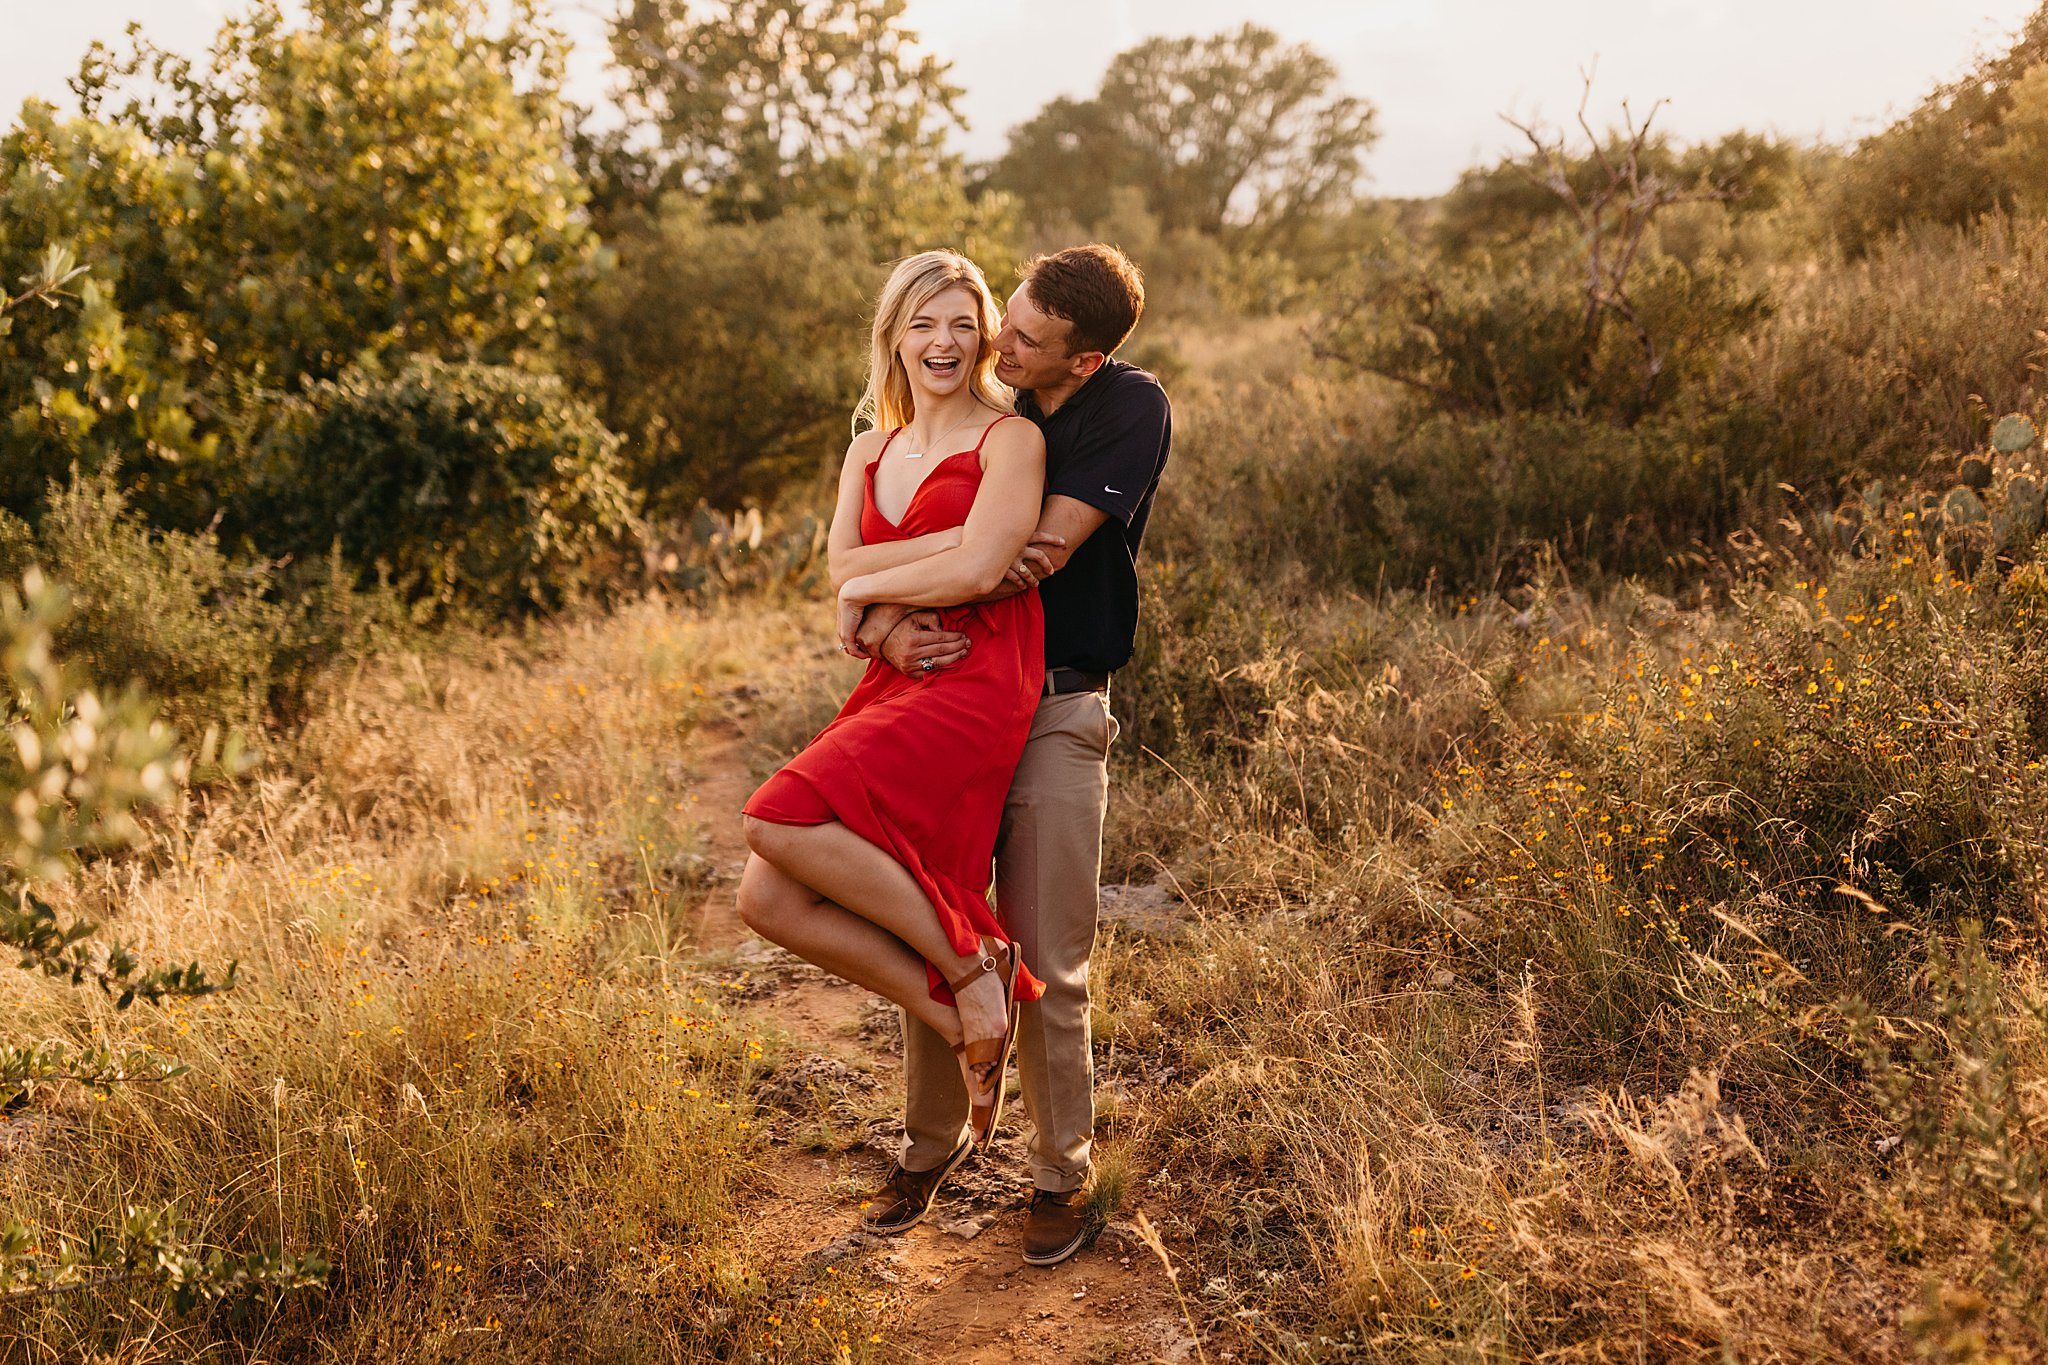 Wilderlove Co_Wedding Photographer_Dripping Springs Photography_Adventure Engagemenet_Rock Climbing Engagement_Hill Country Photographer_North Texas Photographer_0021.jpg